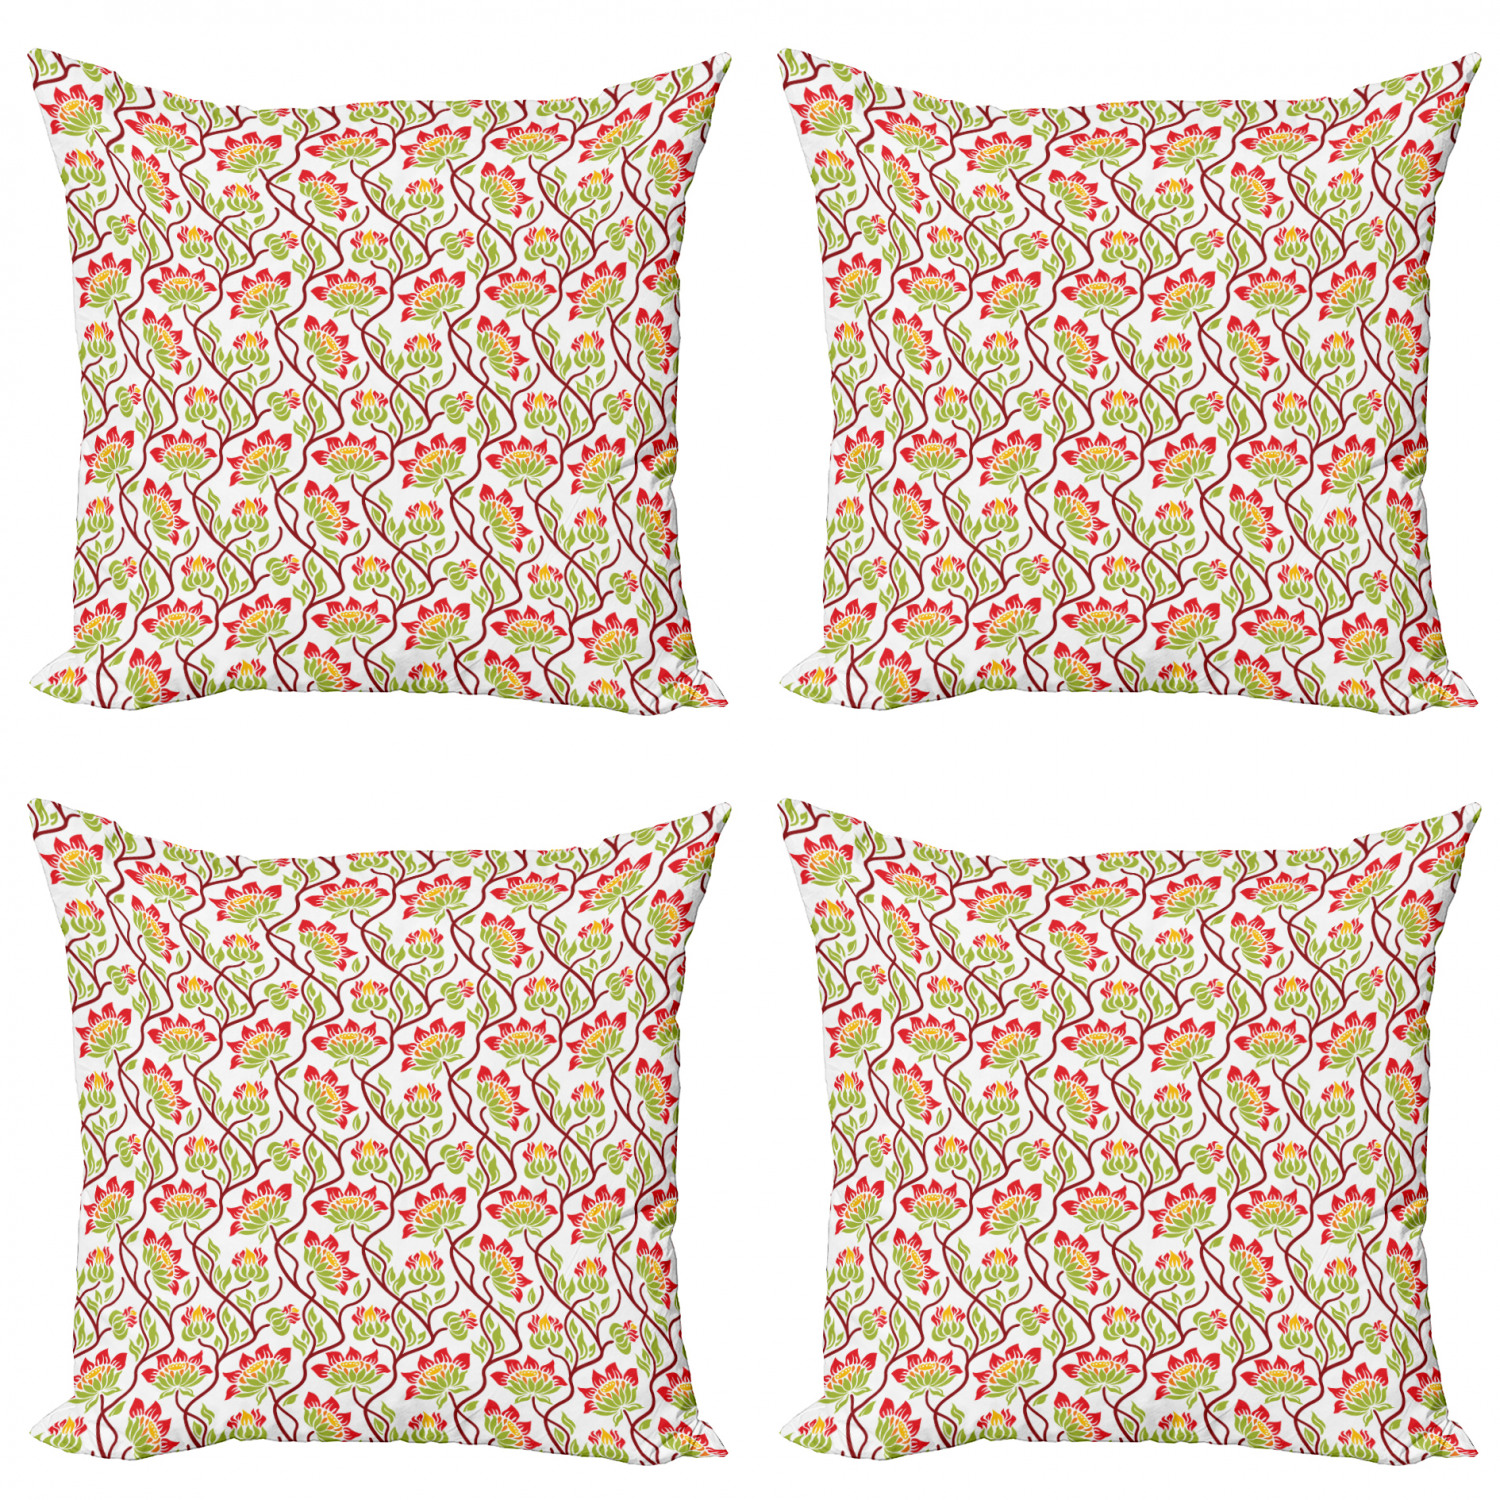 Ambesonne-Floral-Drawings-Cushion-Cover-Set-of-4-for-Couch-and-Bed-in-4-Sizes thumbnail 4